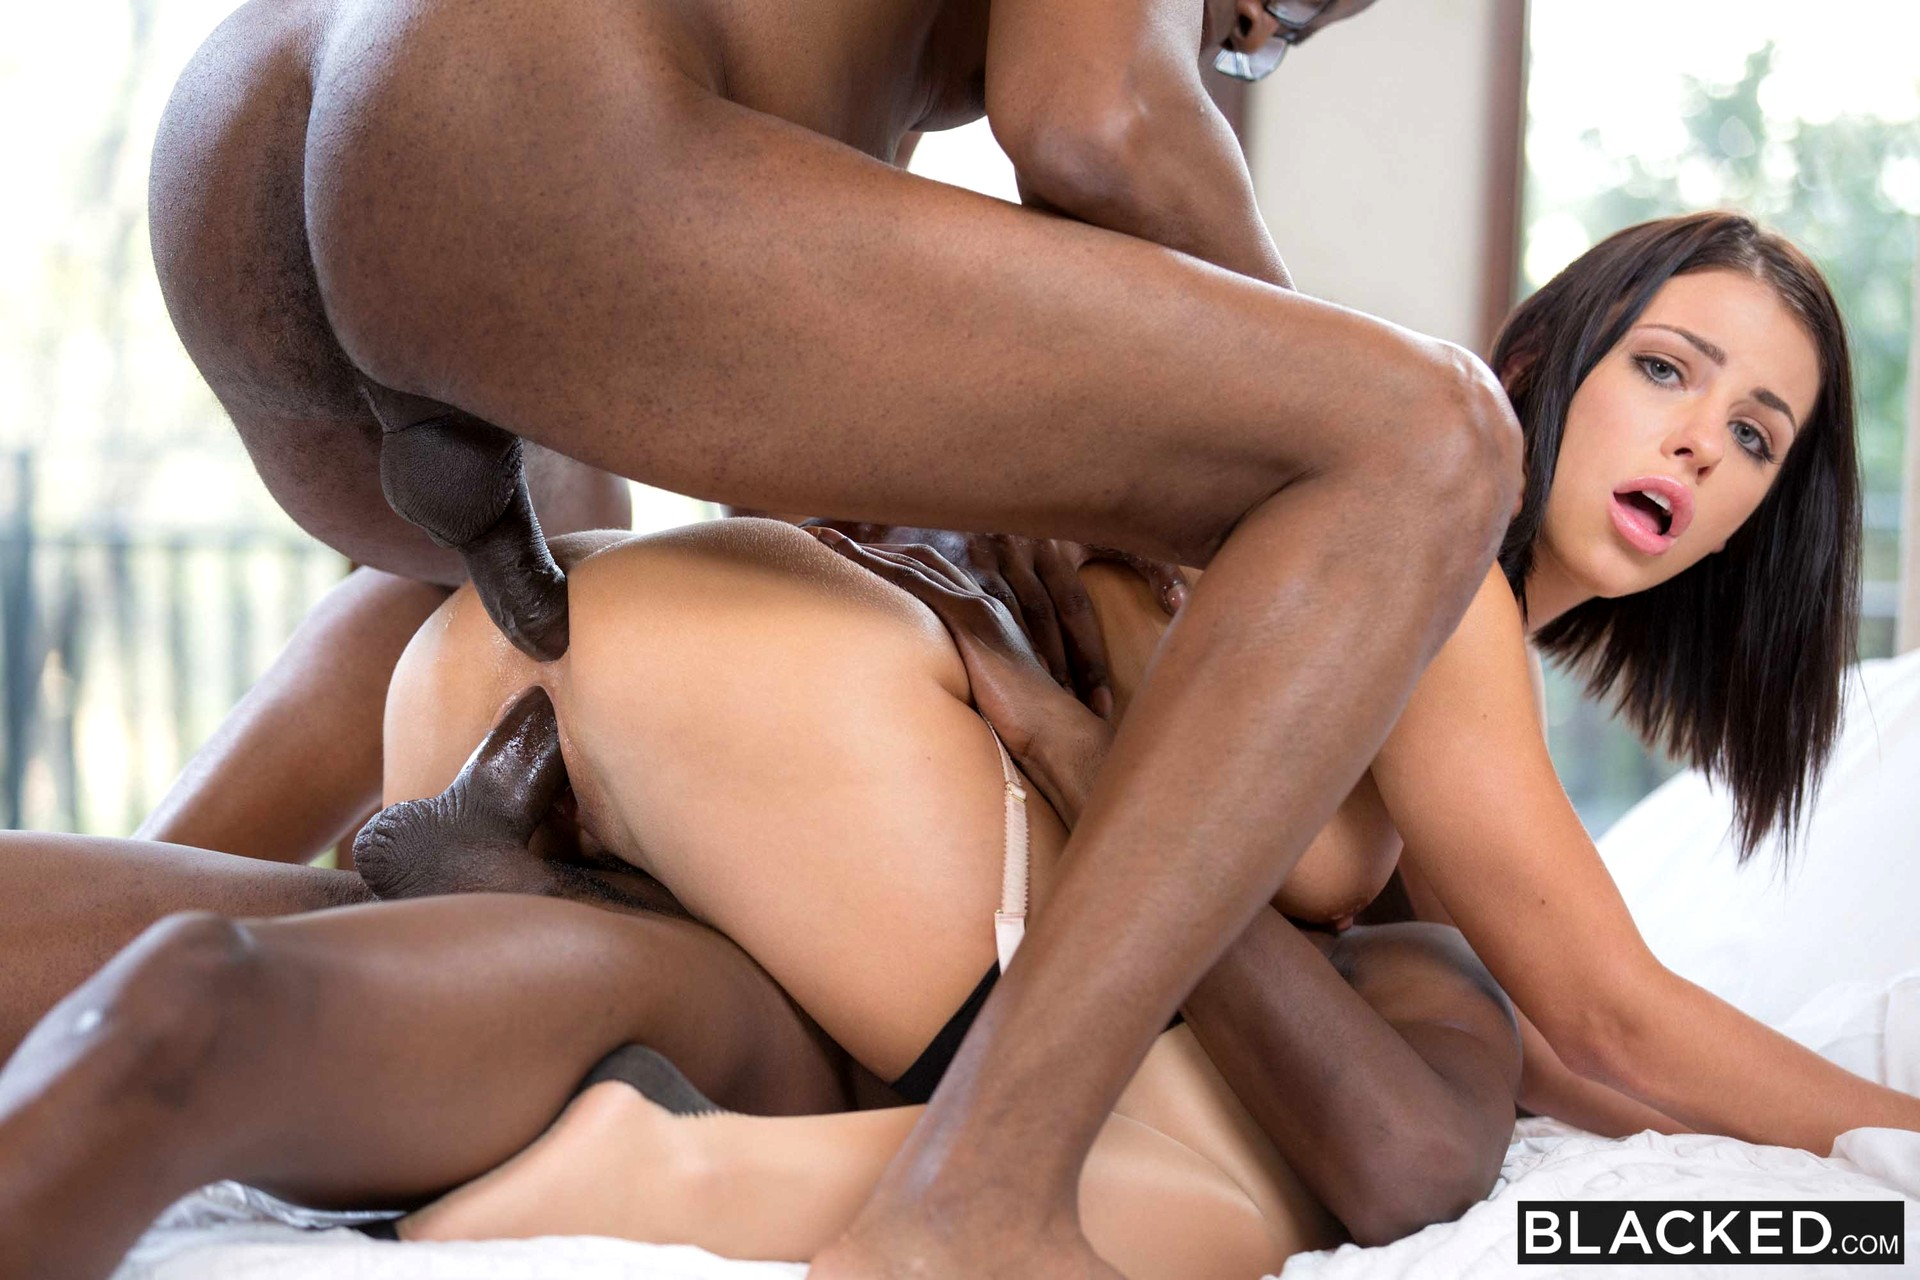 black-threesome-powered-by-phpbb-upskirt-mpegs-parental-directory